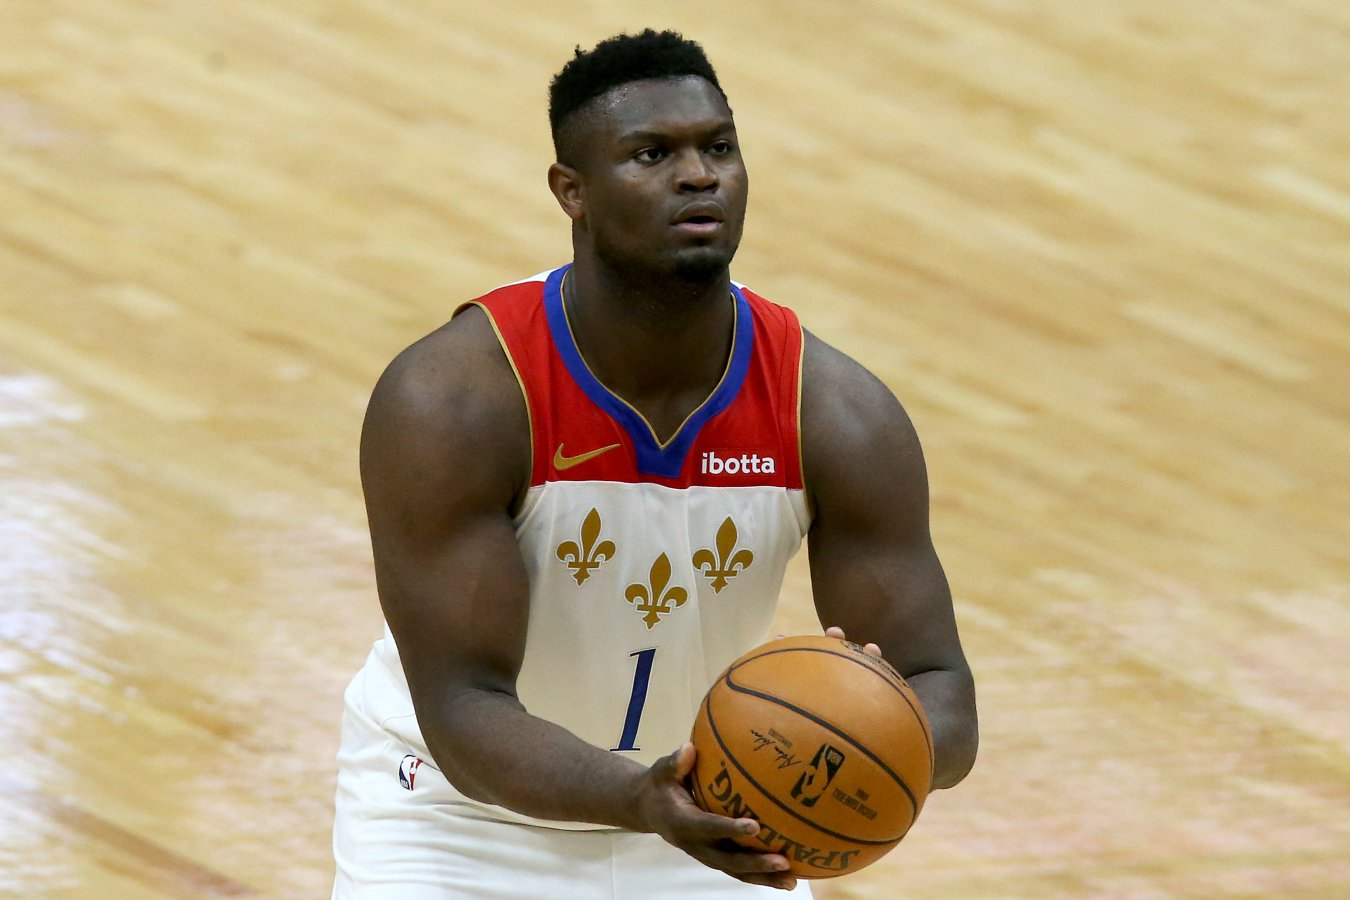 Zion Williamson (ala-pívot, New Orleans Pelicans)